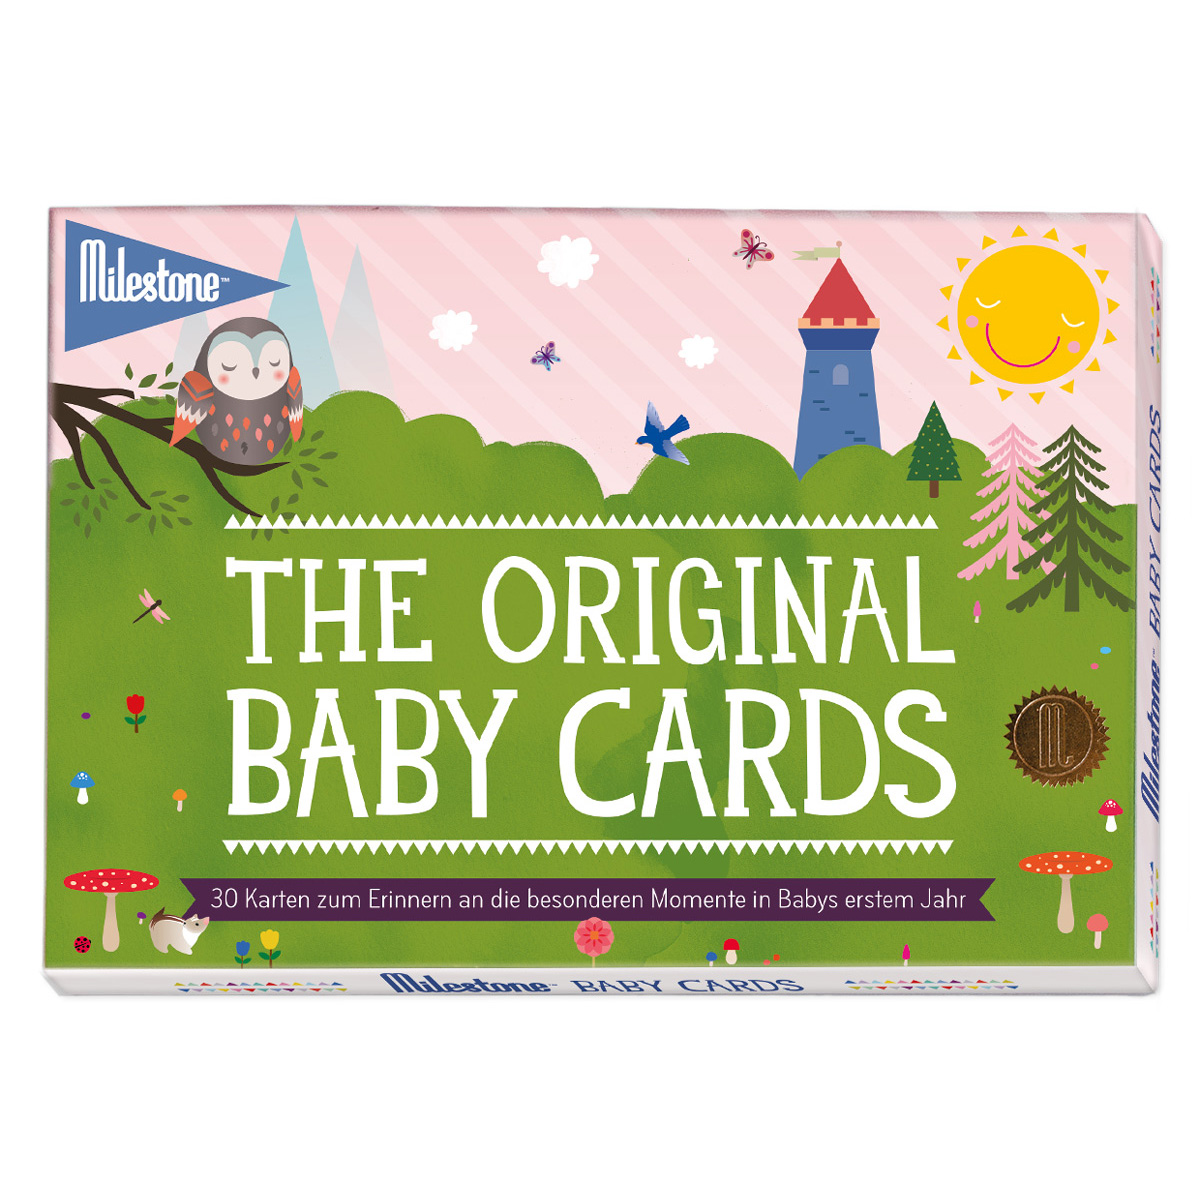 The Original Baby Cards - Milestone